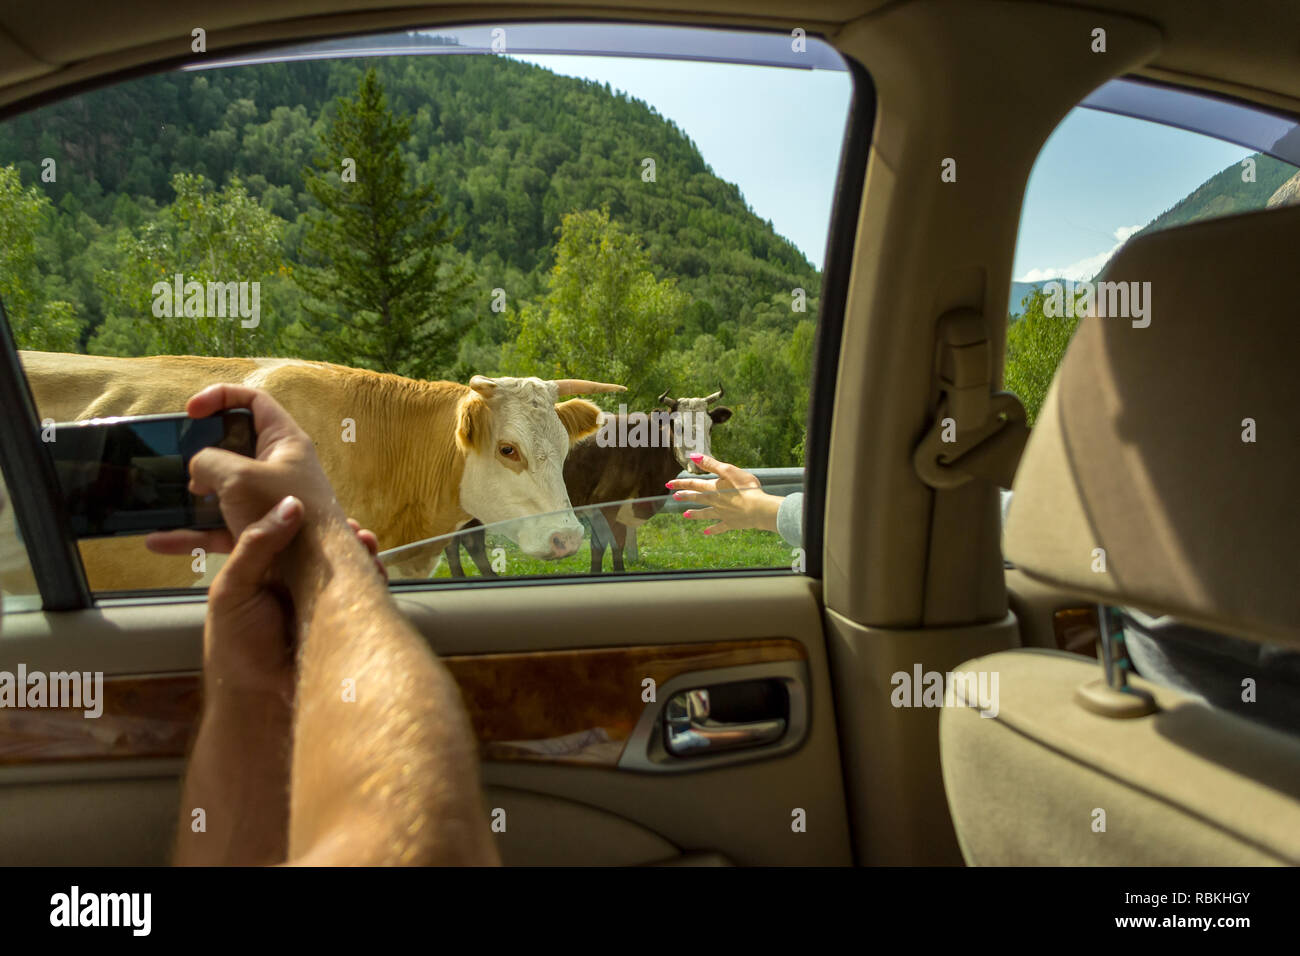 A young man pulling two hairy hands into the open window of a moving car holds a smartphone taking a photo of the cows in the Altai with blue clear sk - Stock Image